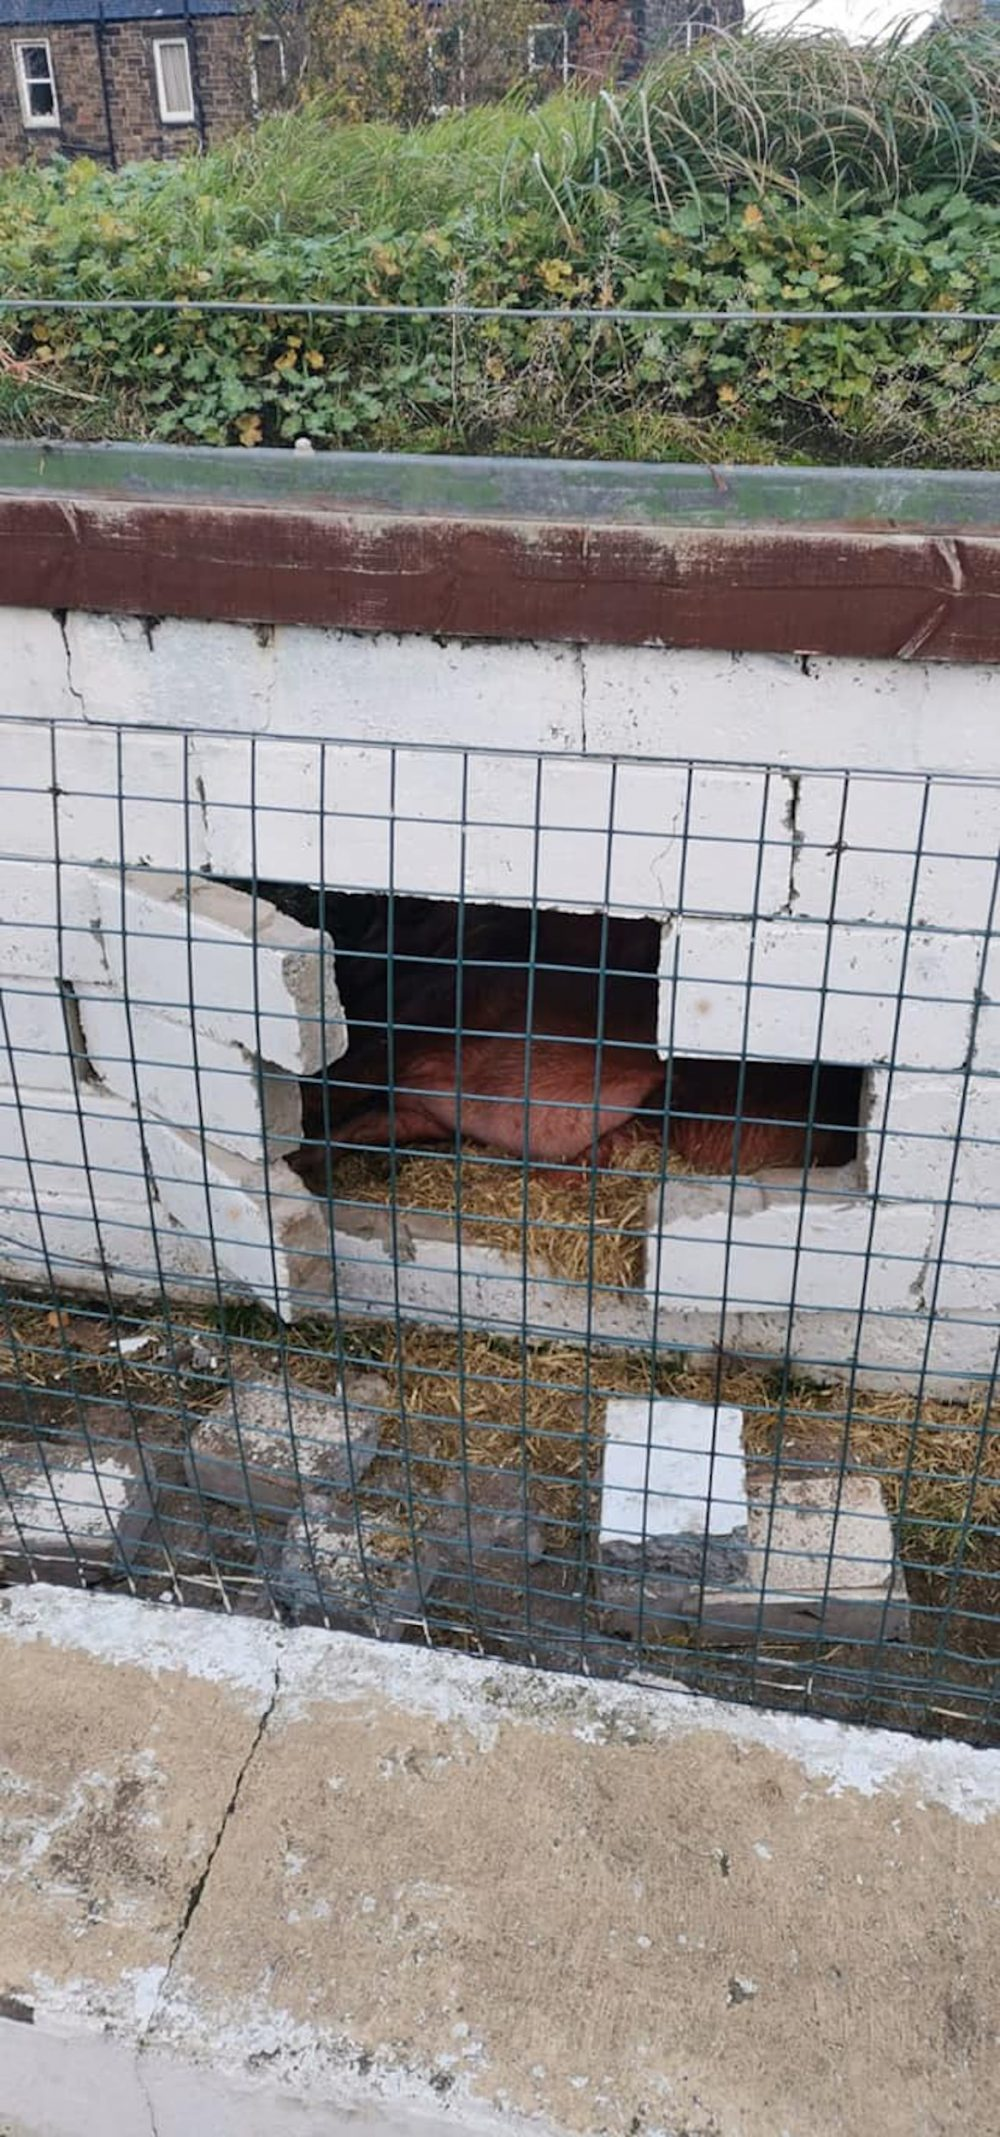 A hole in a wall with pigs - Scottish News